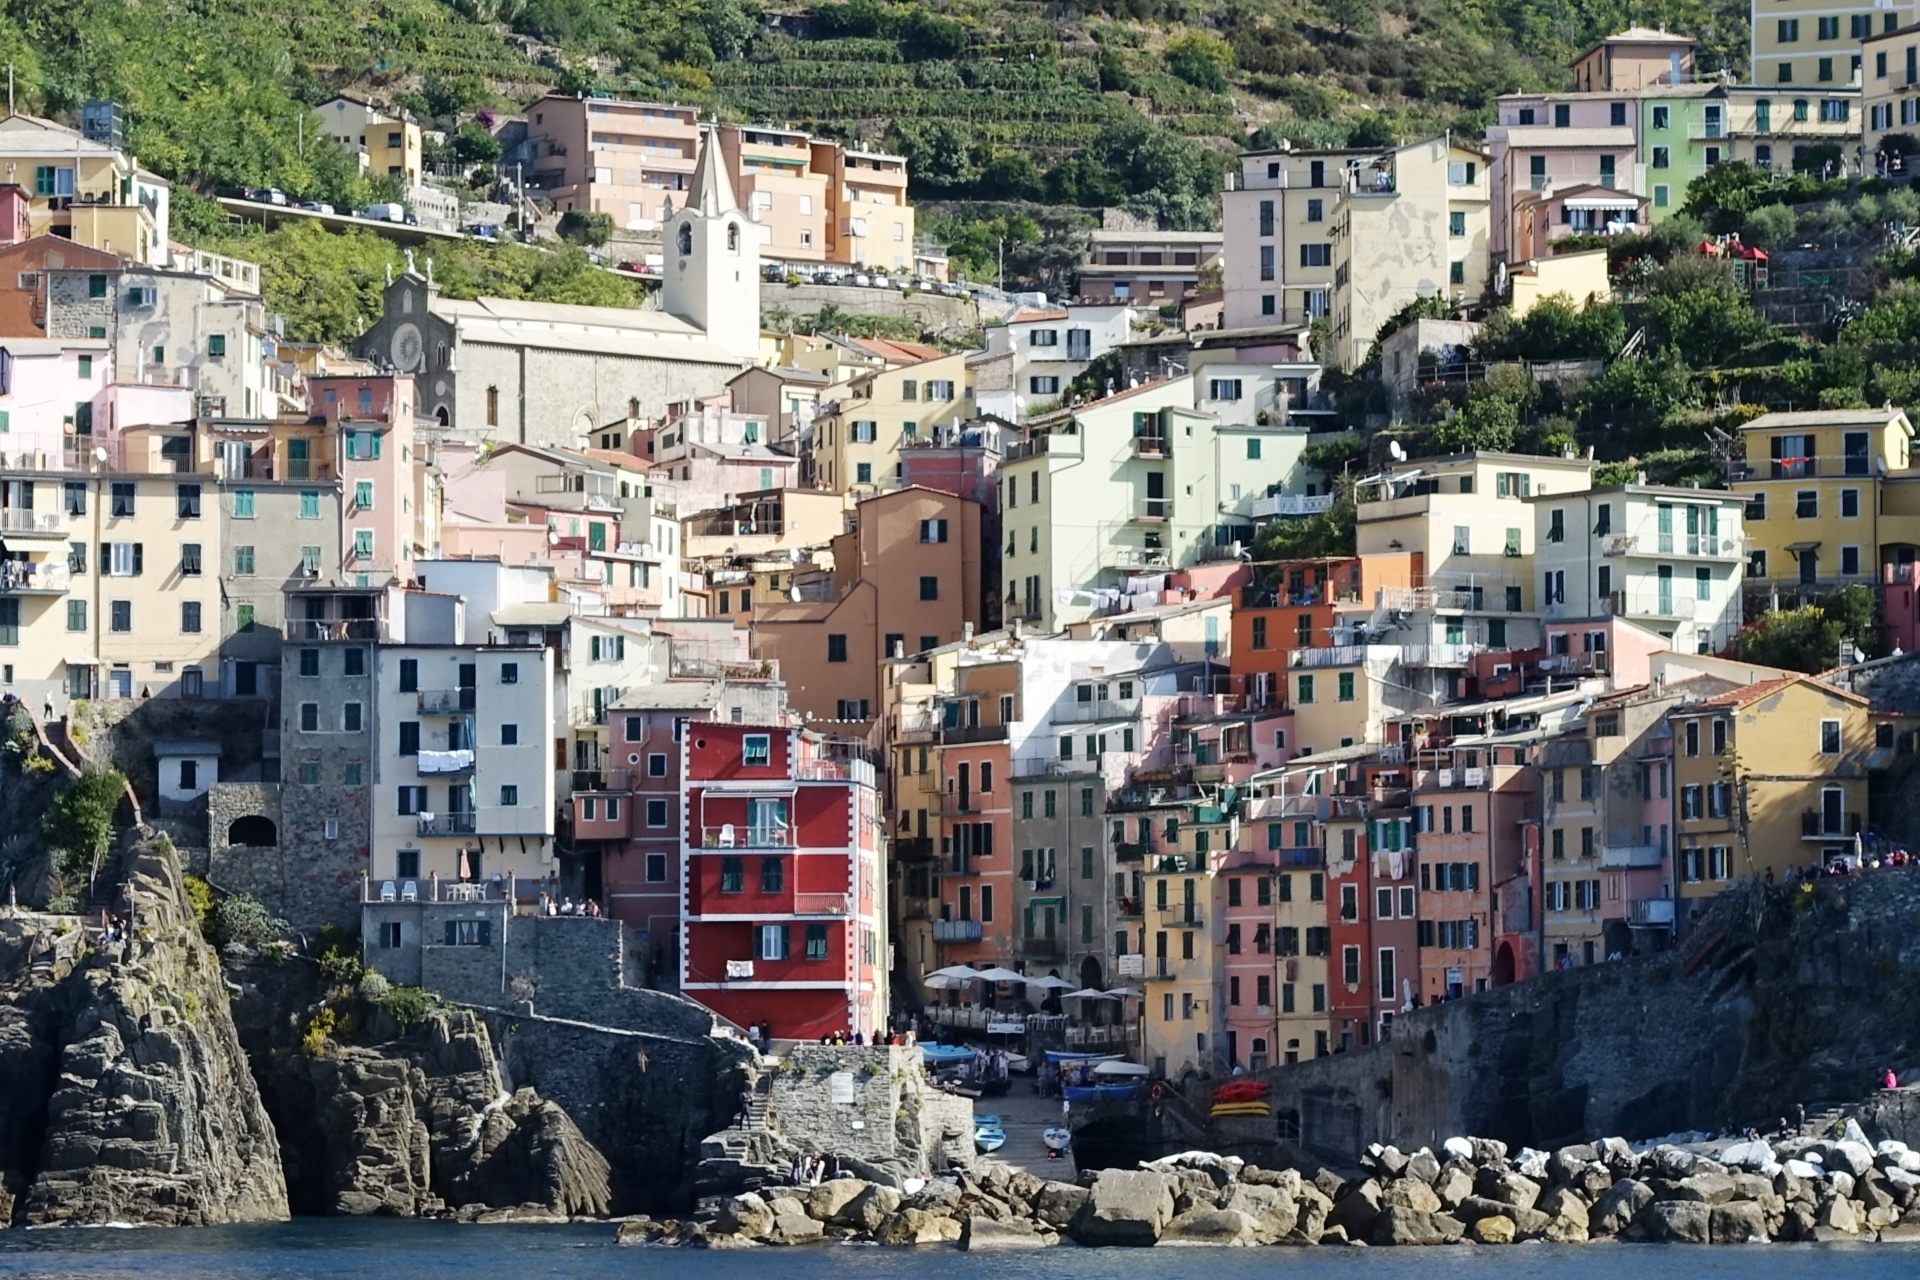 One of the Cinque Terre Villages